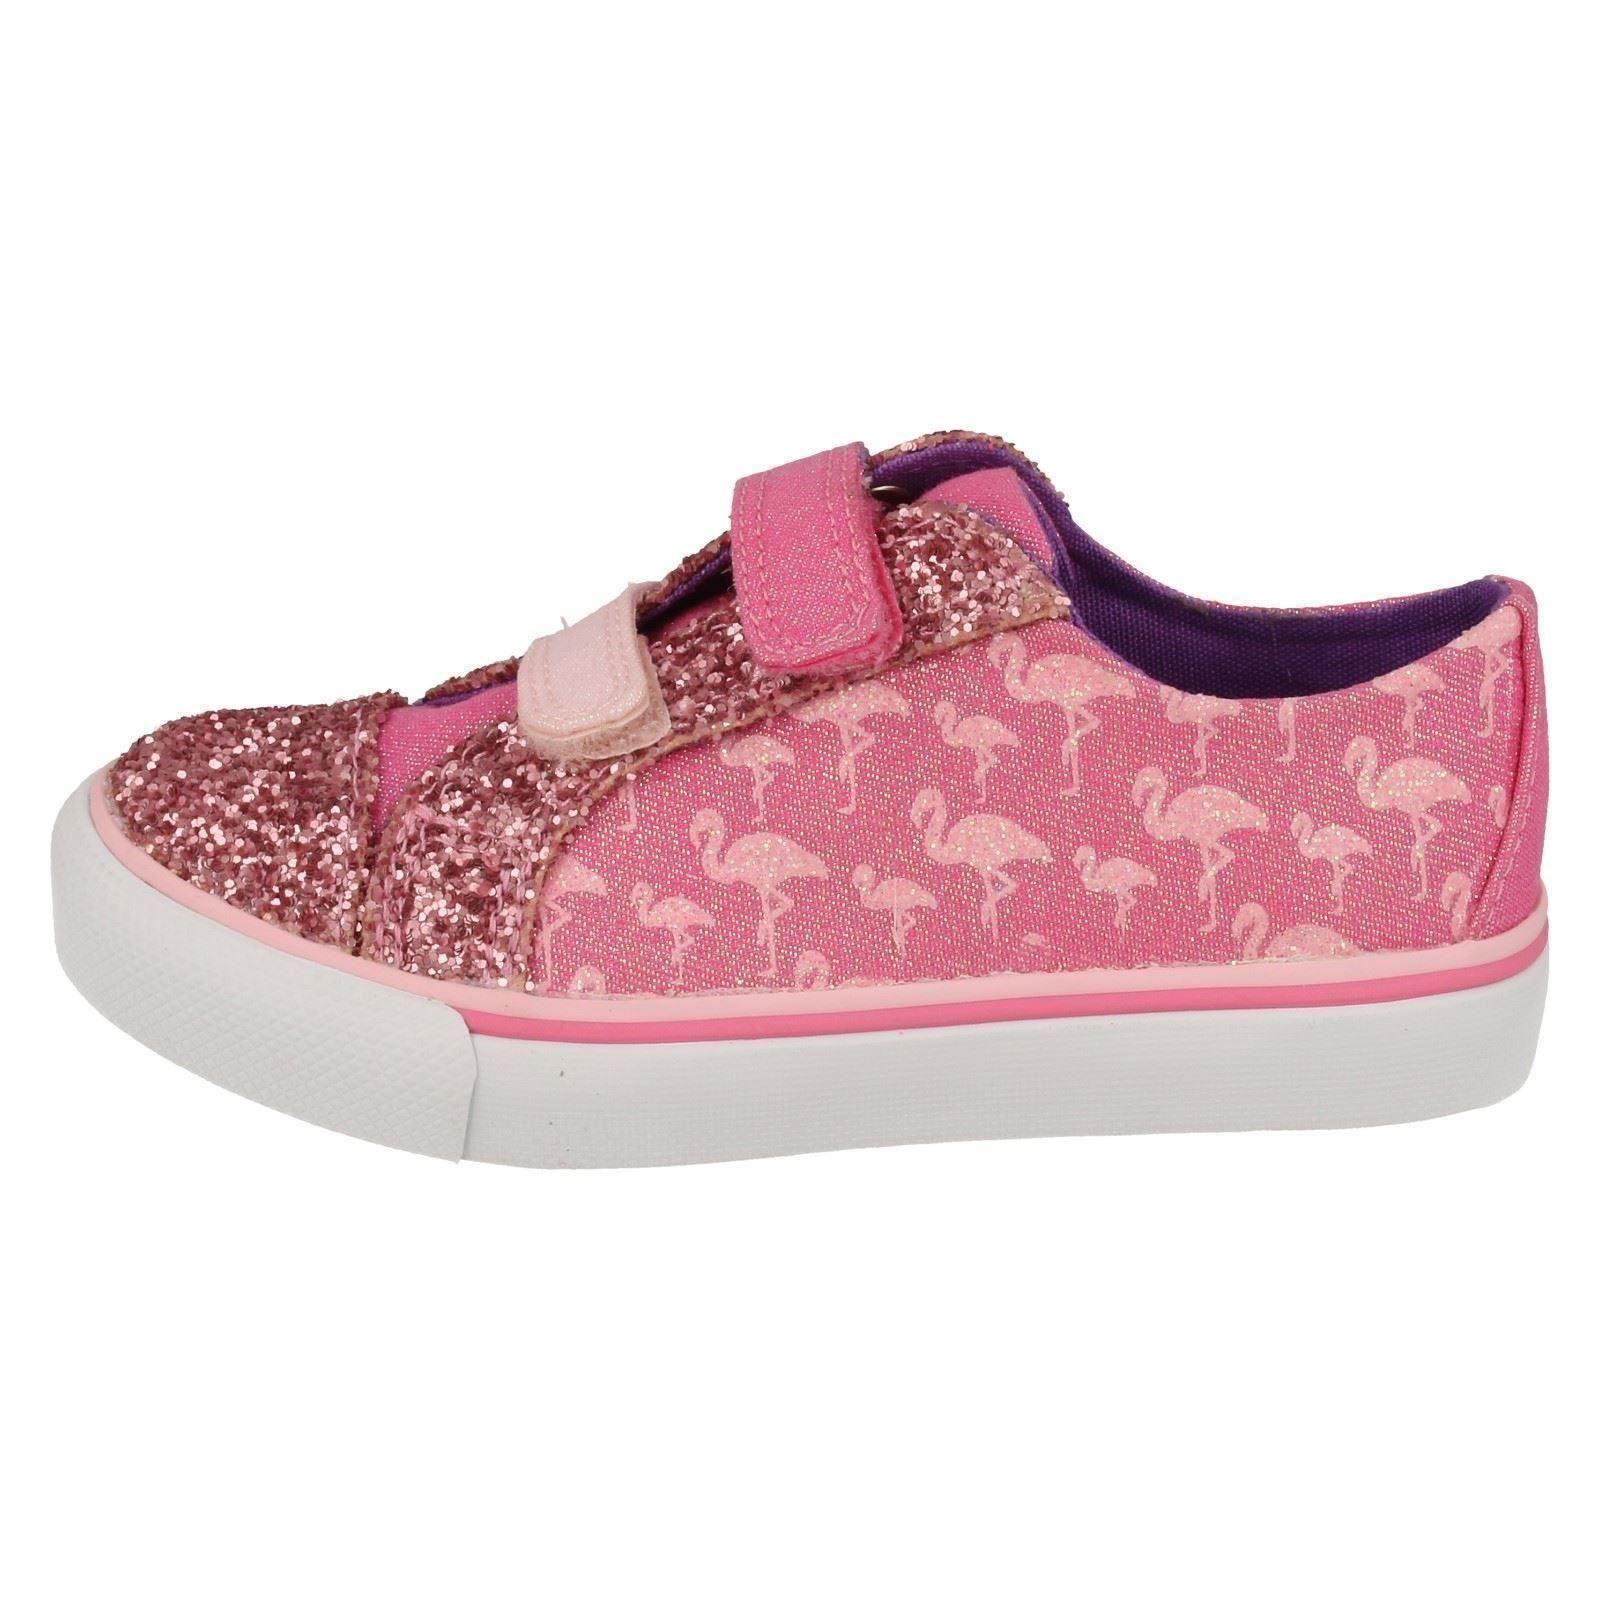 Girls Clarks Casual Canvas Shoes Brill Race